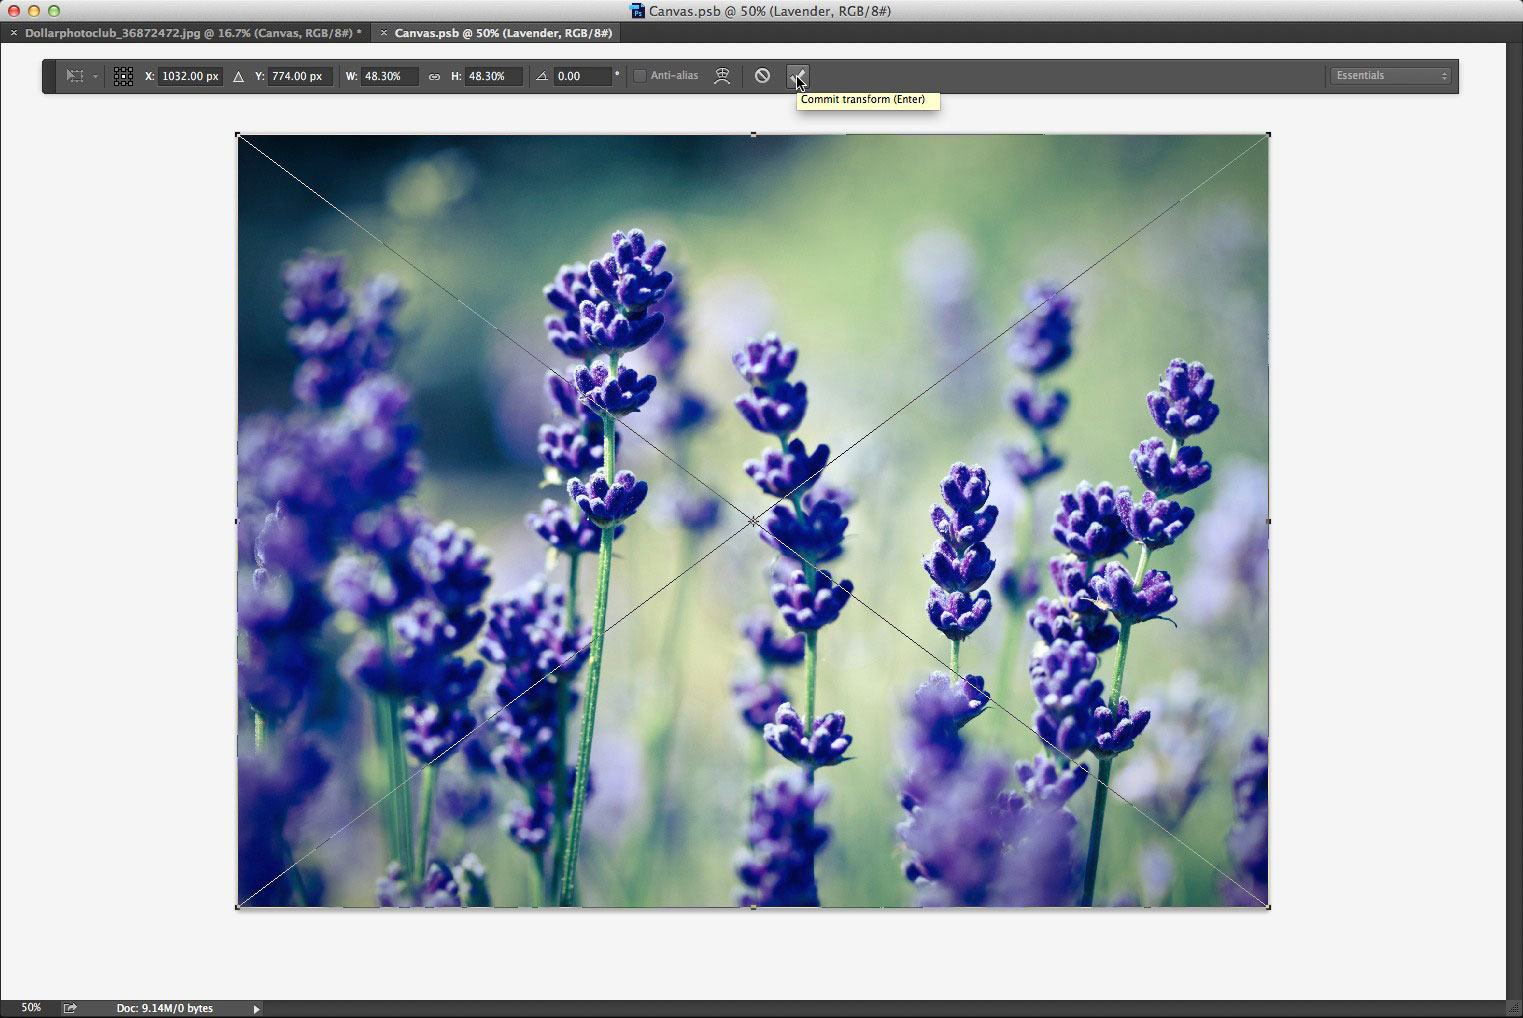 Replacing the image in the smart object